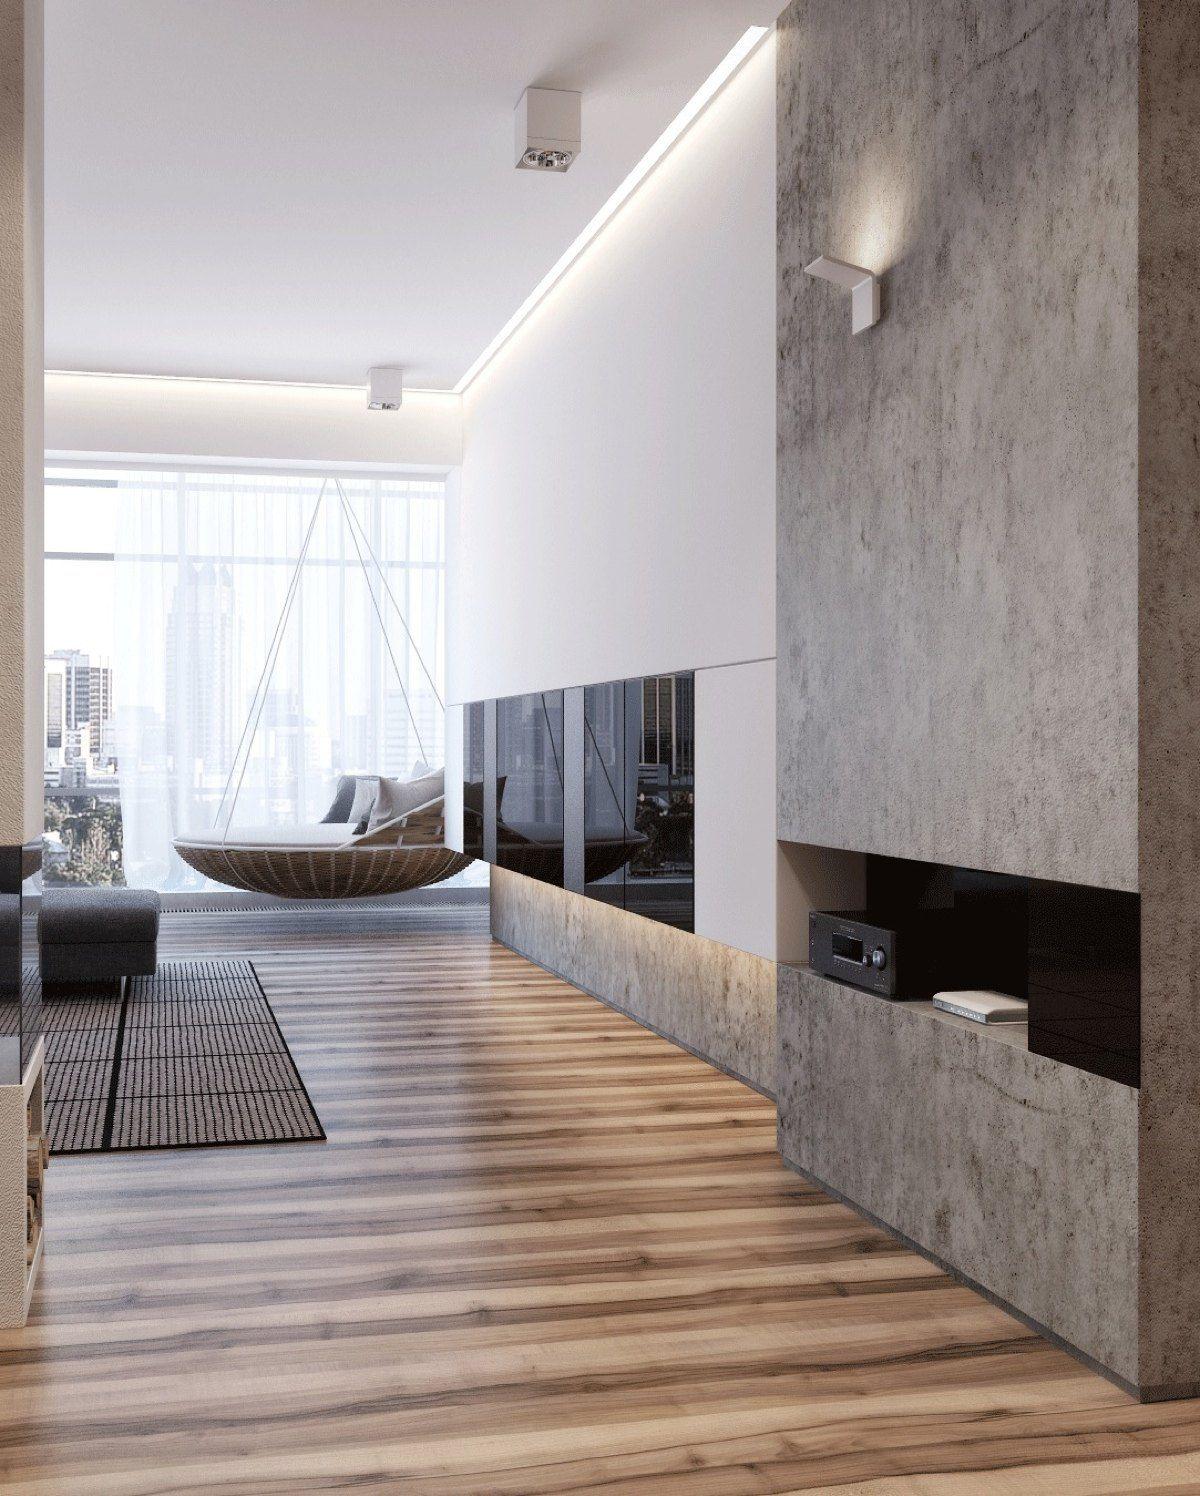 Gallery Apartment Interior Design: Two Apartments With Sleek Grayscale Interiors